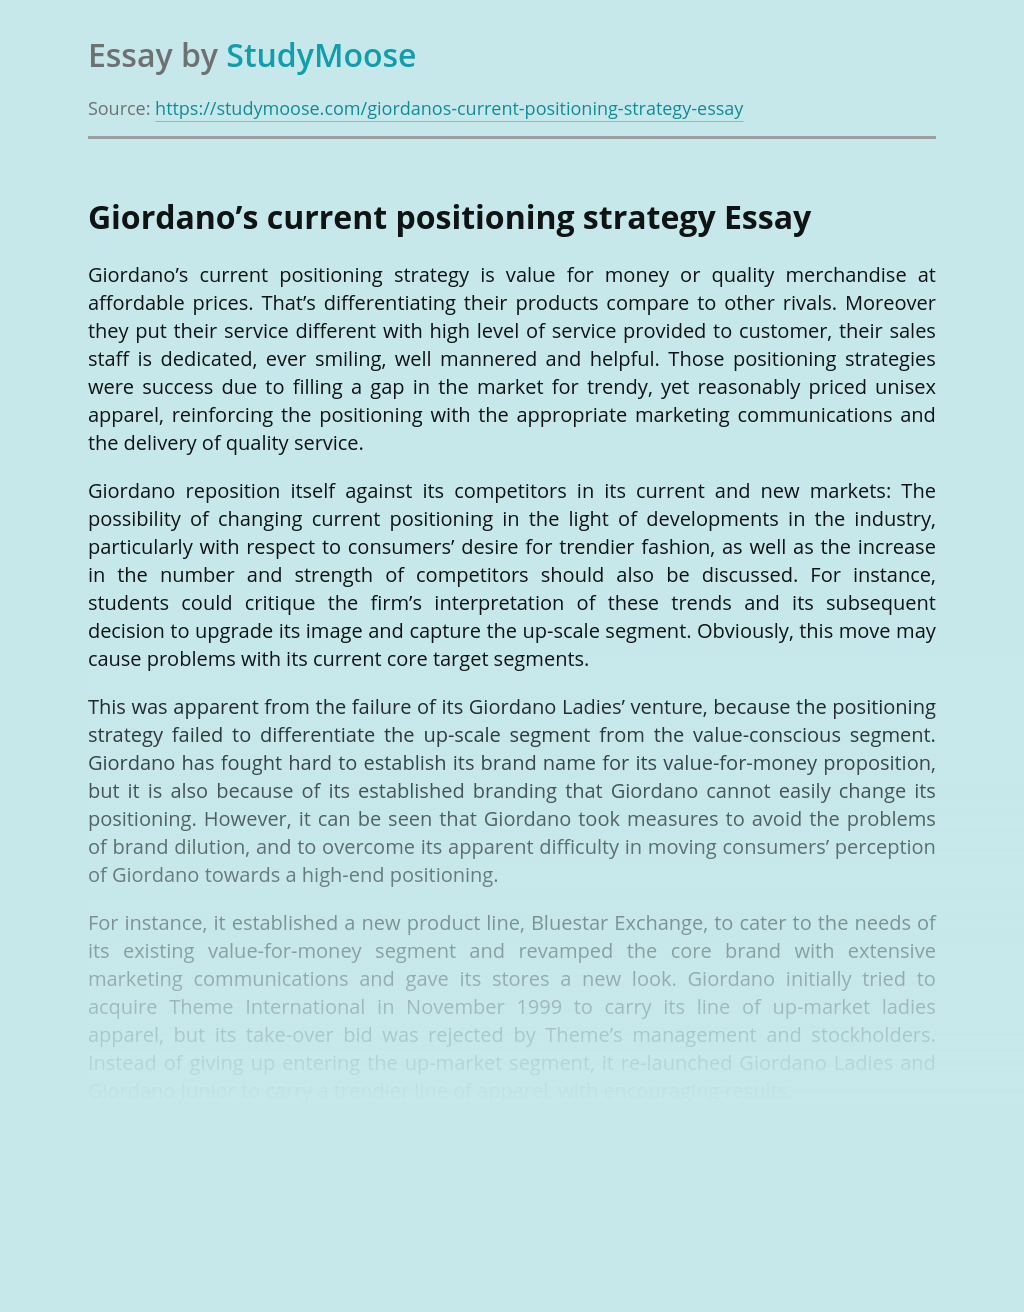 Positioning Strategy of Giordano's Current Marketing